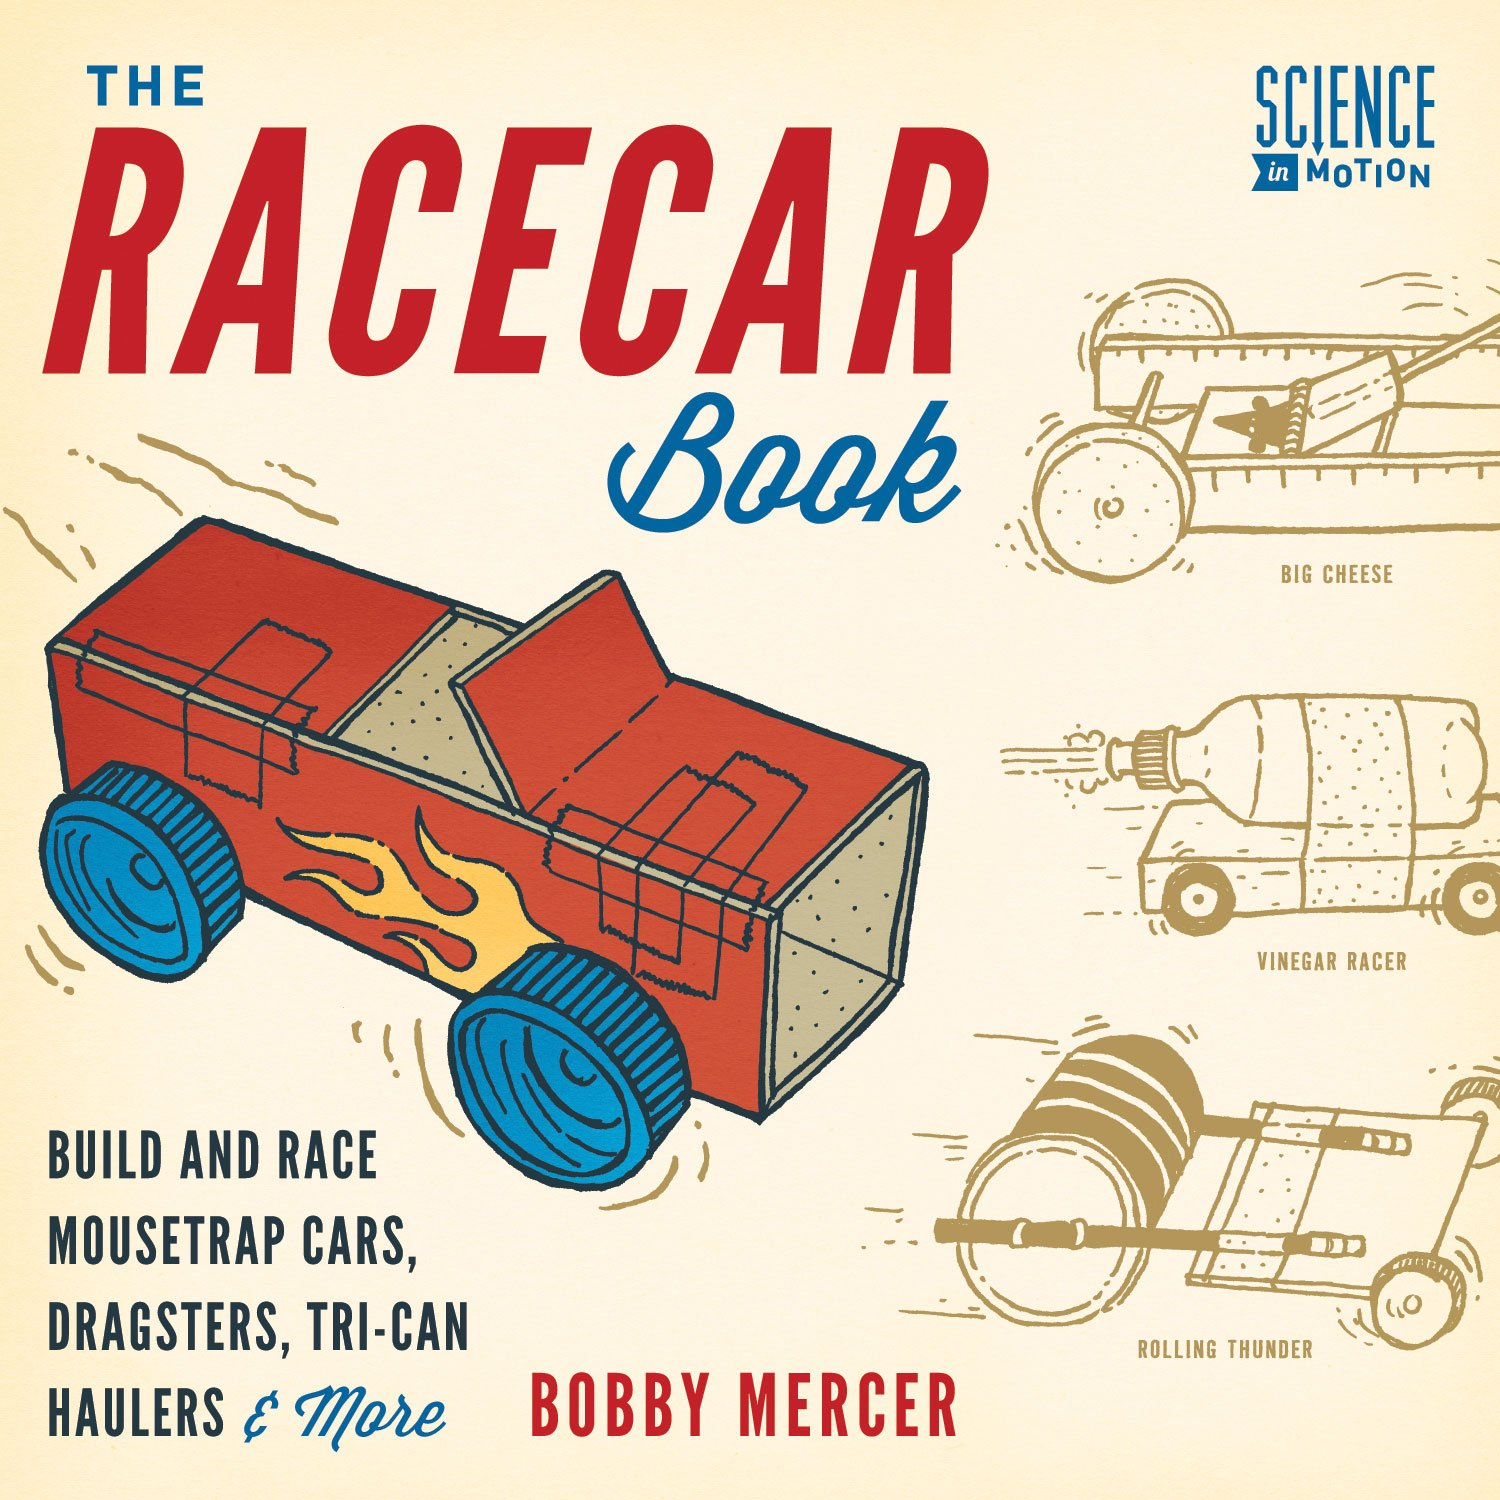 The Racecar Book Build And Race Mousetrap Cars Dragsters Tri